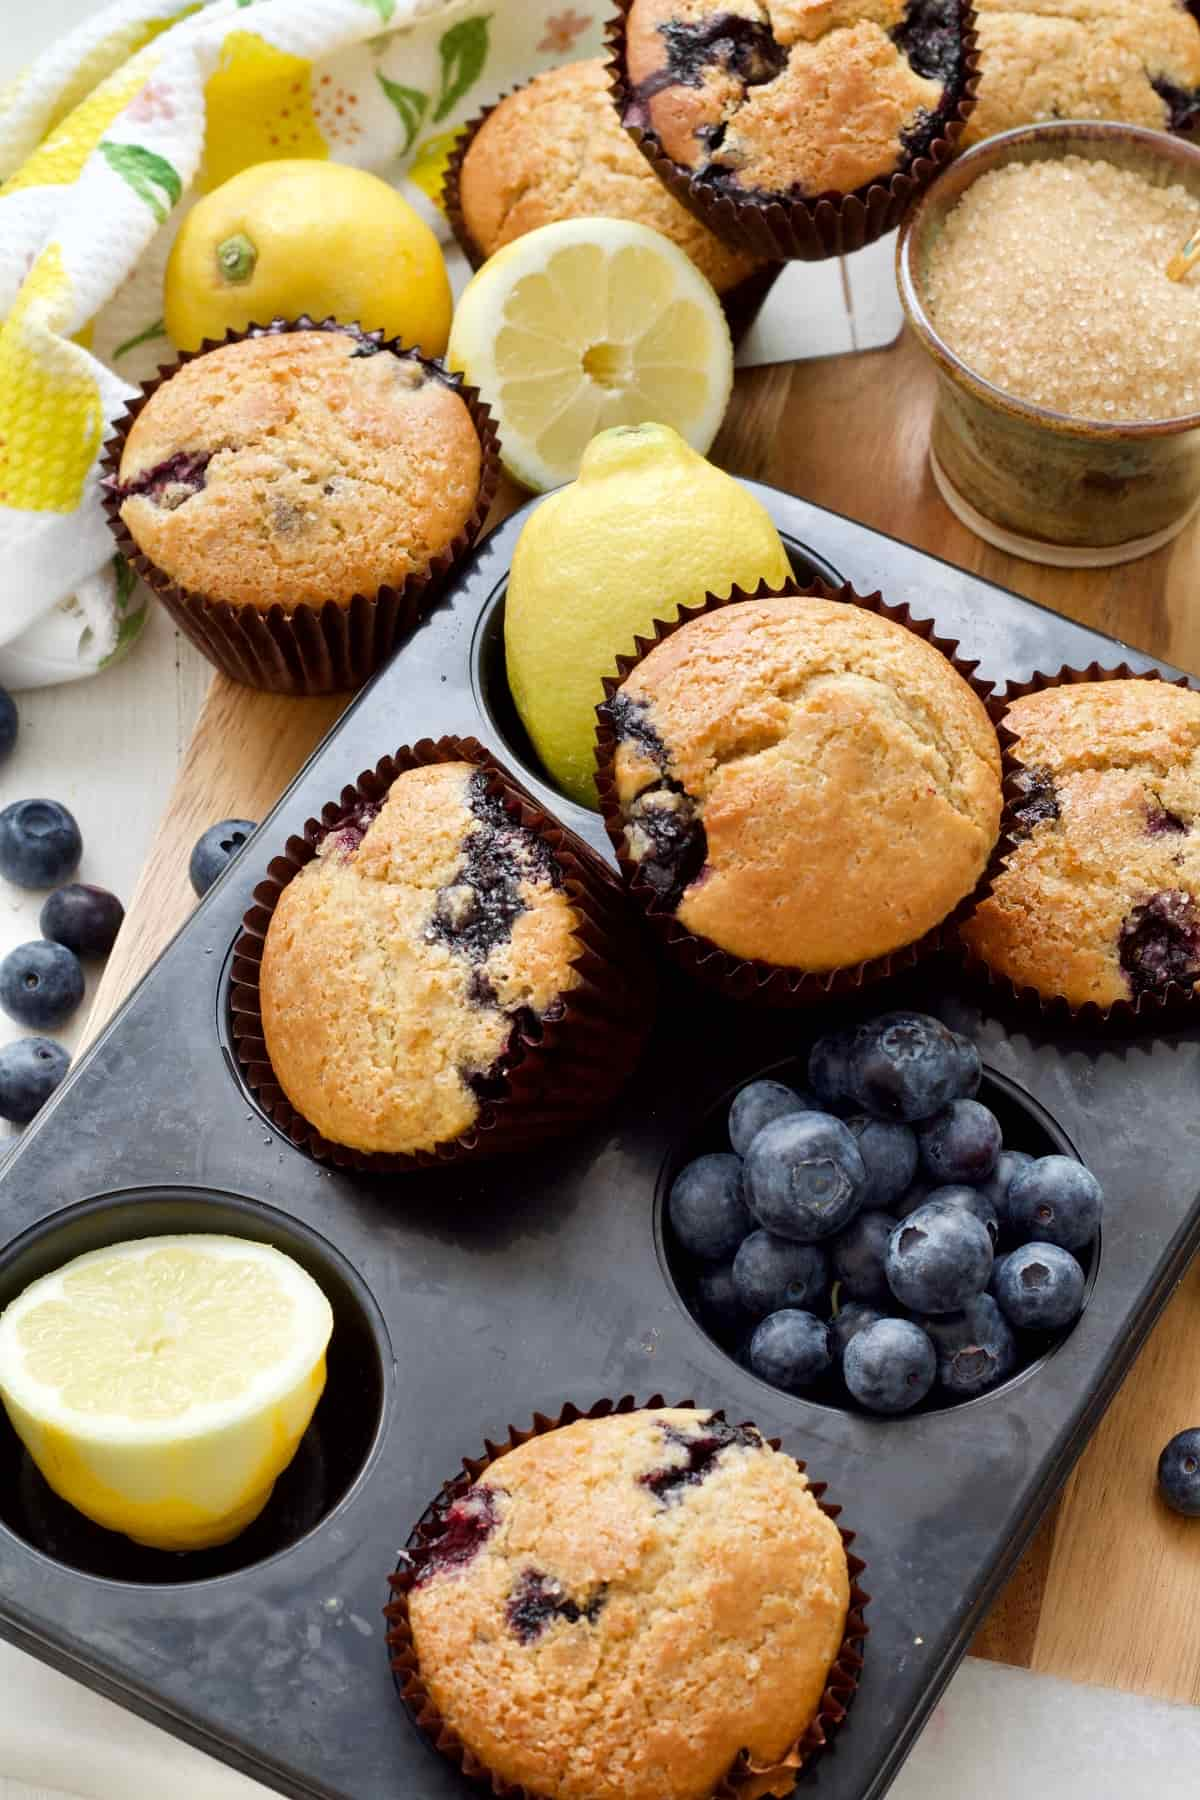 Muffin tin with muffins, lemons and blueberries in it.